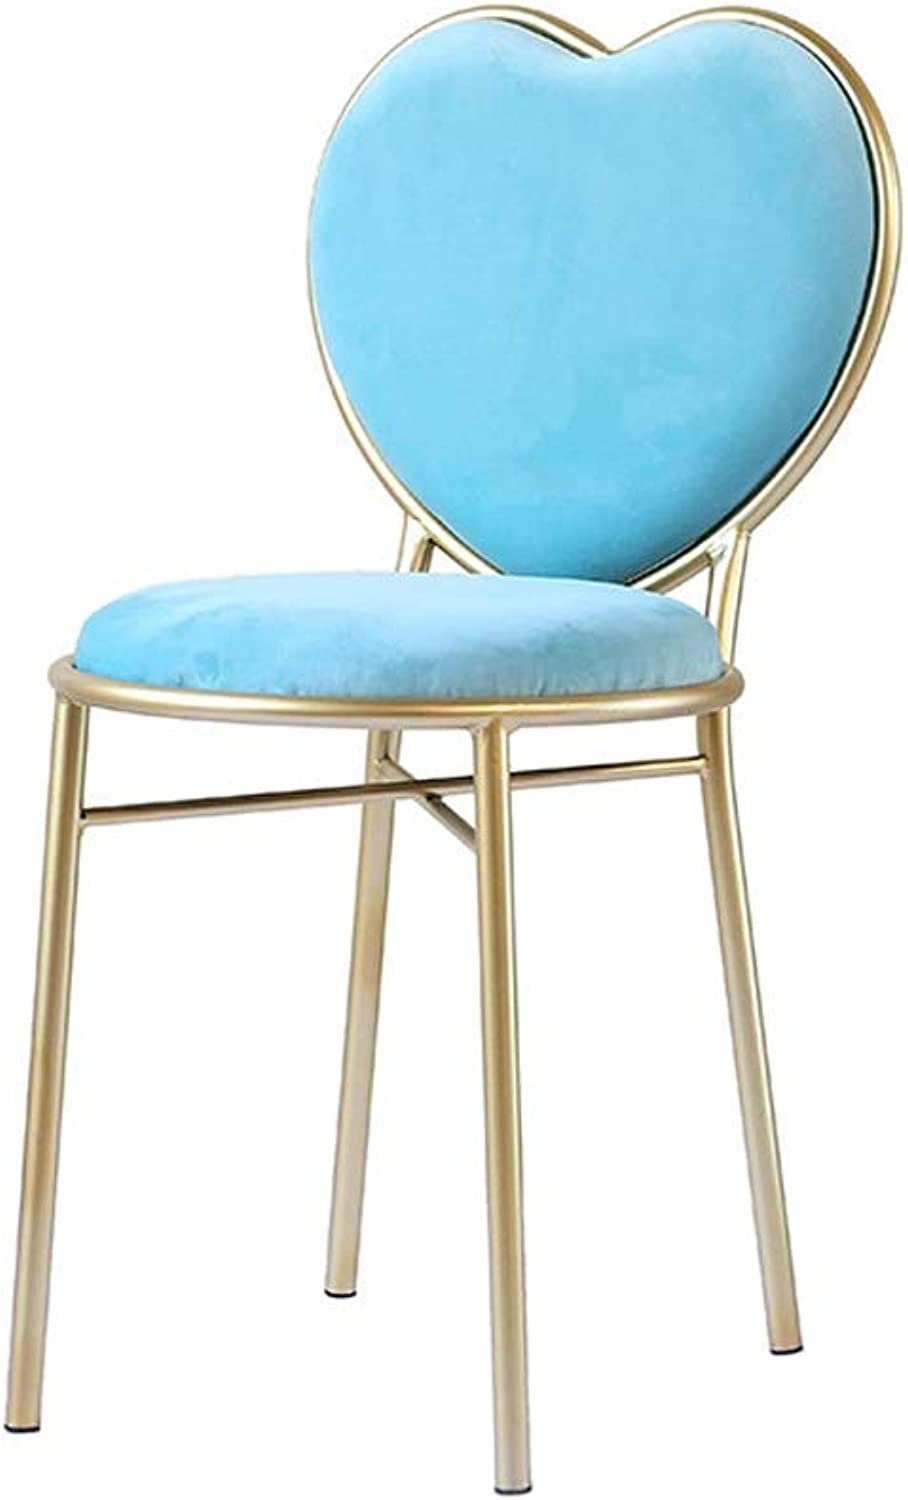 Dining Chair Bar Chair Dressing Table Counter Chair Cafe Restaurant Dining Table Chair Home Office Backrest Leisure Chair (color   Sky bluee)